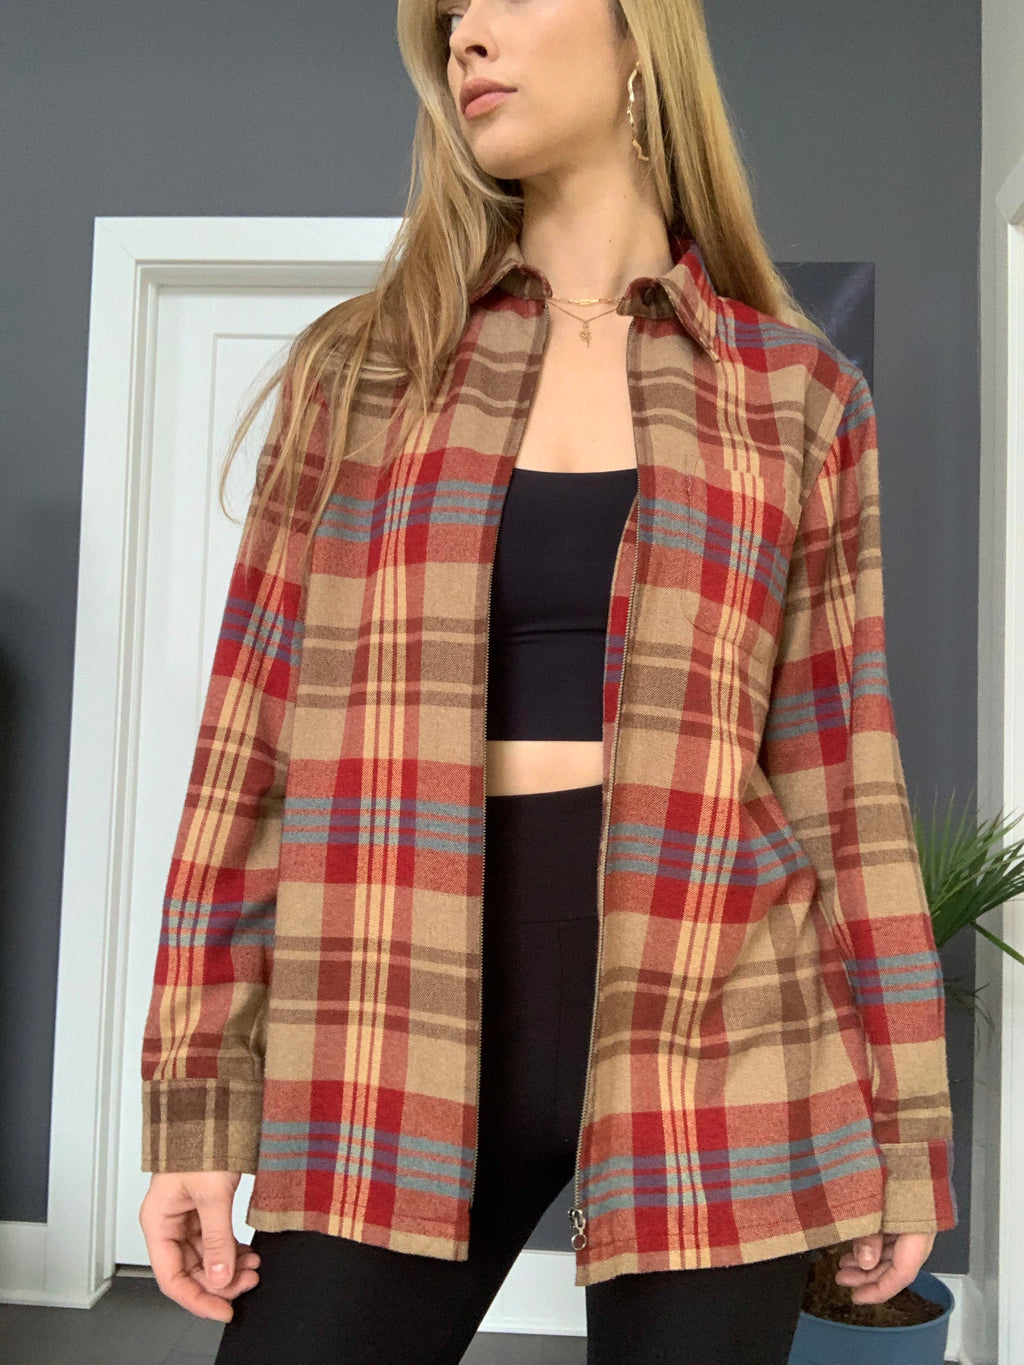 Camel Plaid Zip-up Soft Flannel/Shacket